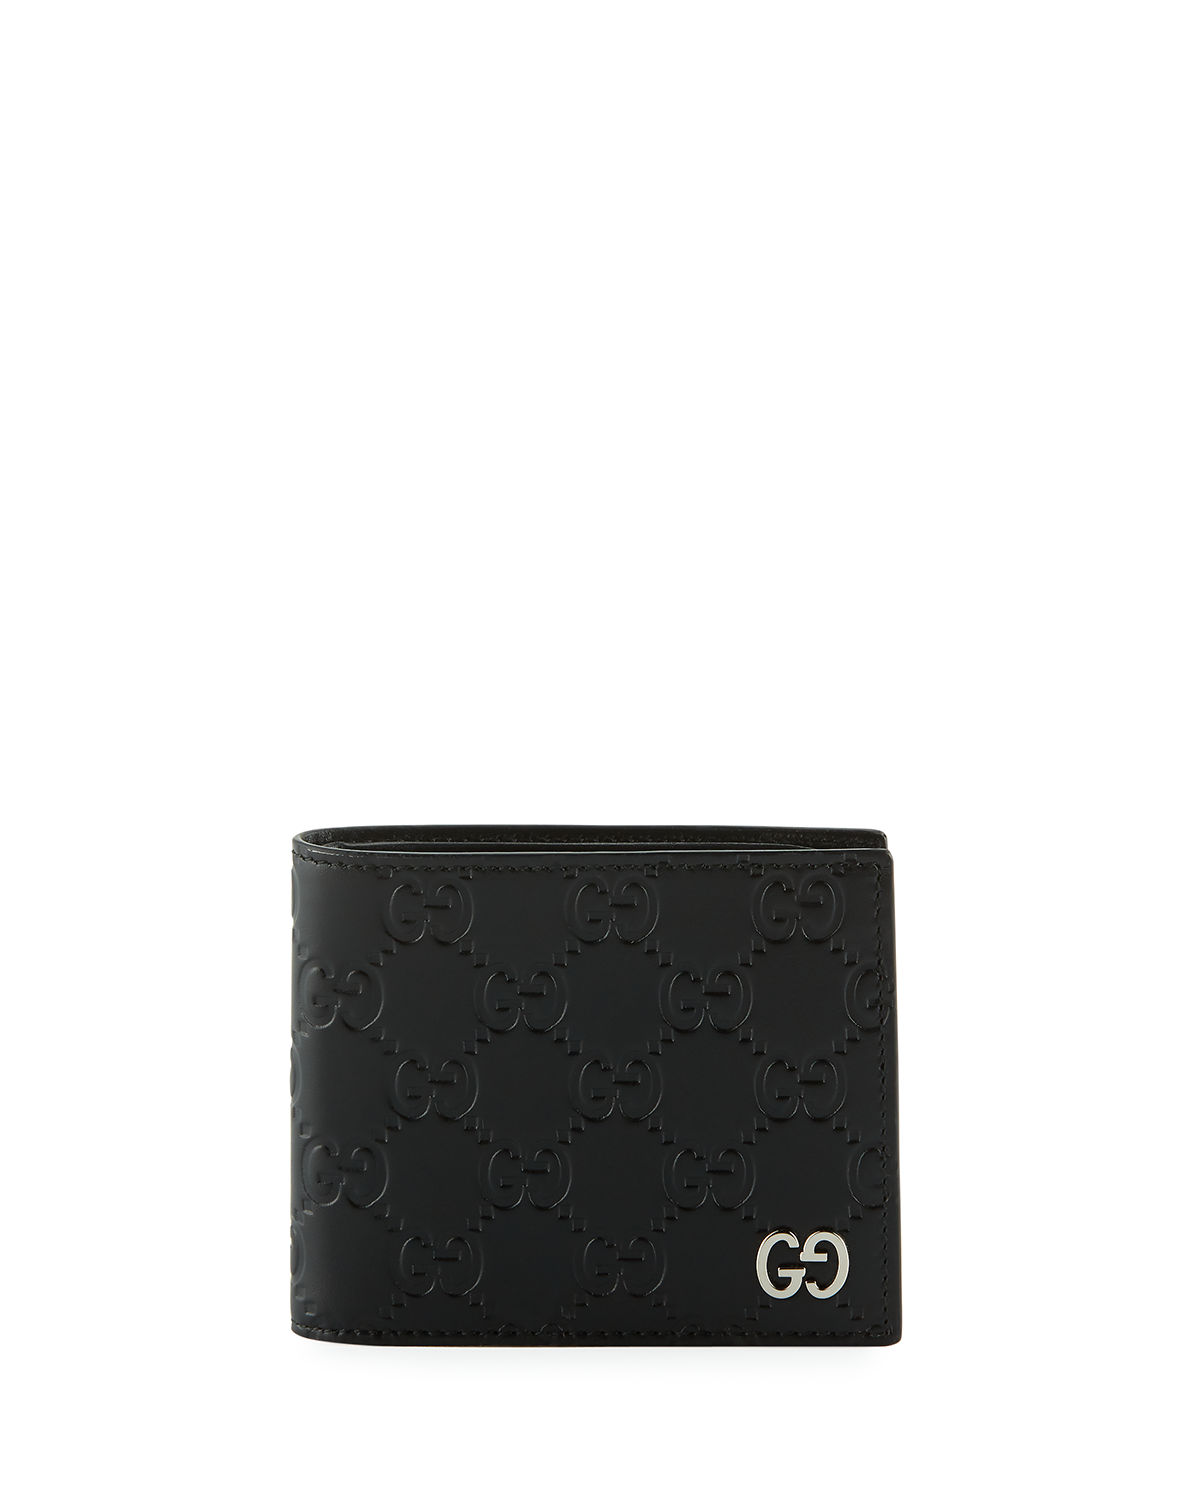 6ee24886750 Gucci Gucci Signature Leather Wallet